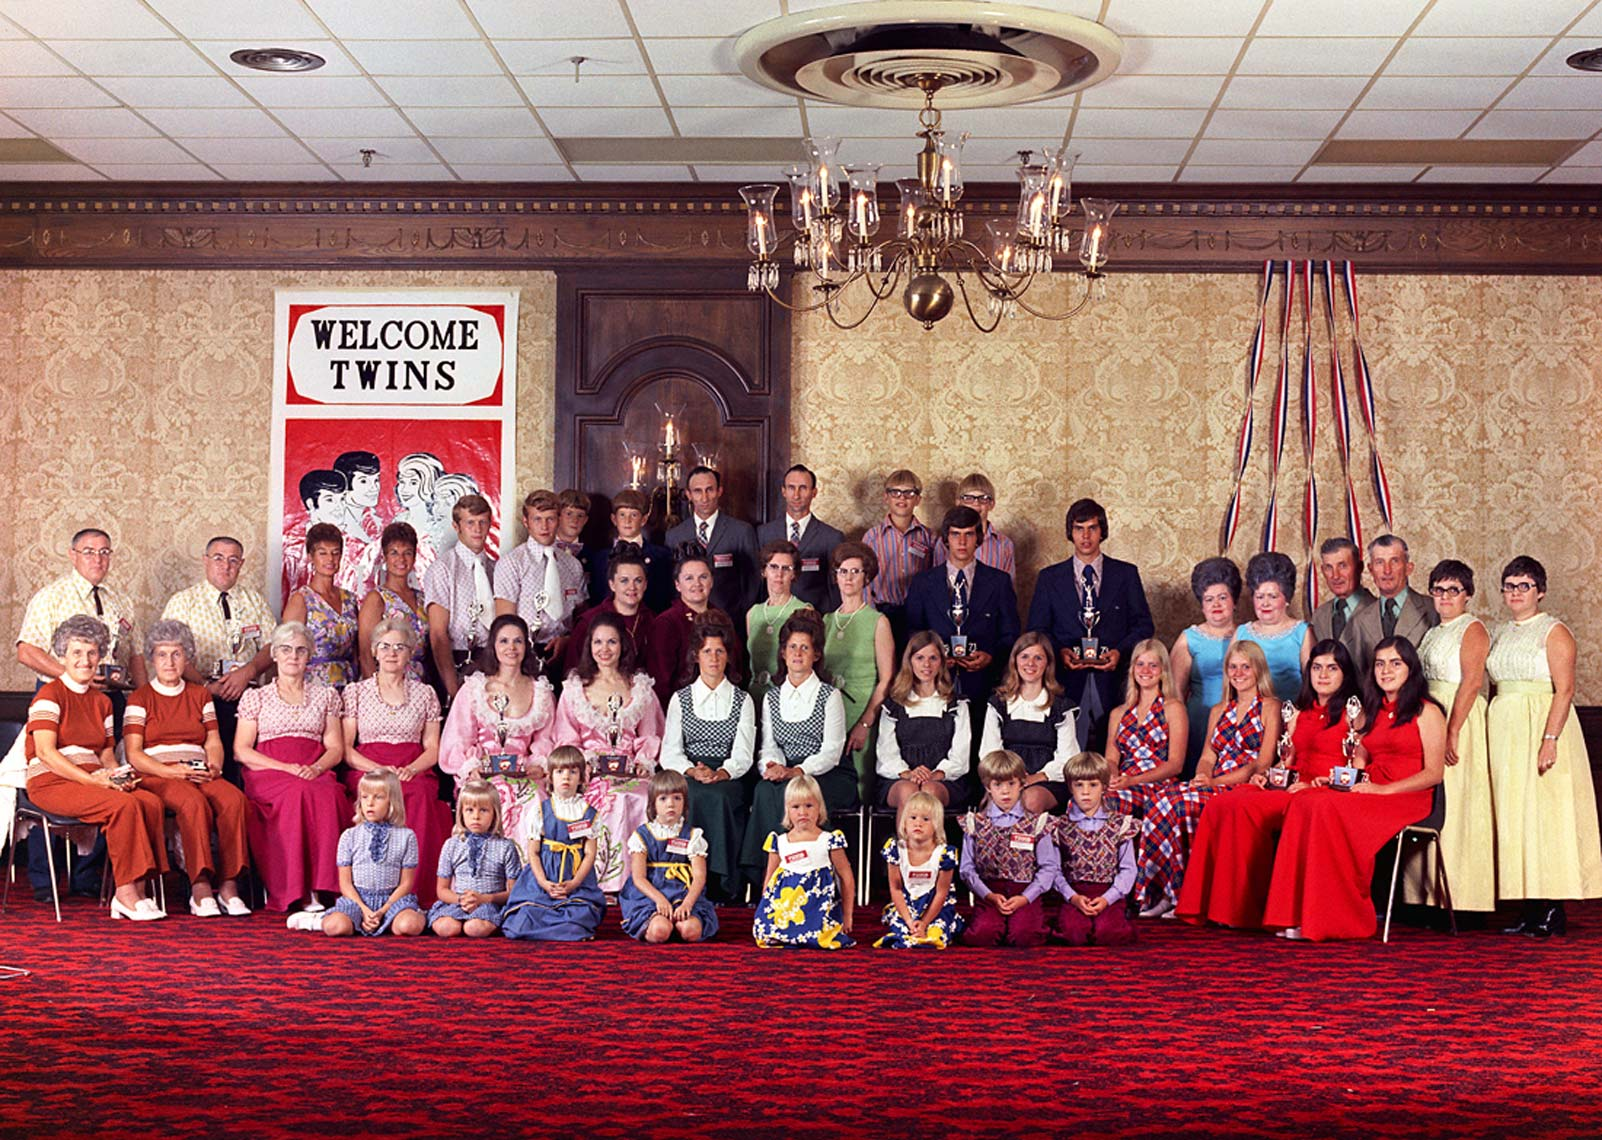 INTERNATIONAL SOCIETY OF TWINS; MUNCIE, IN